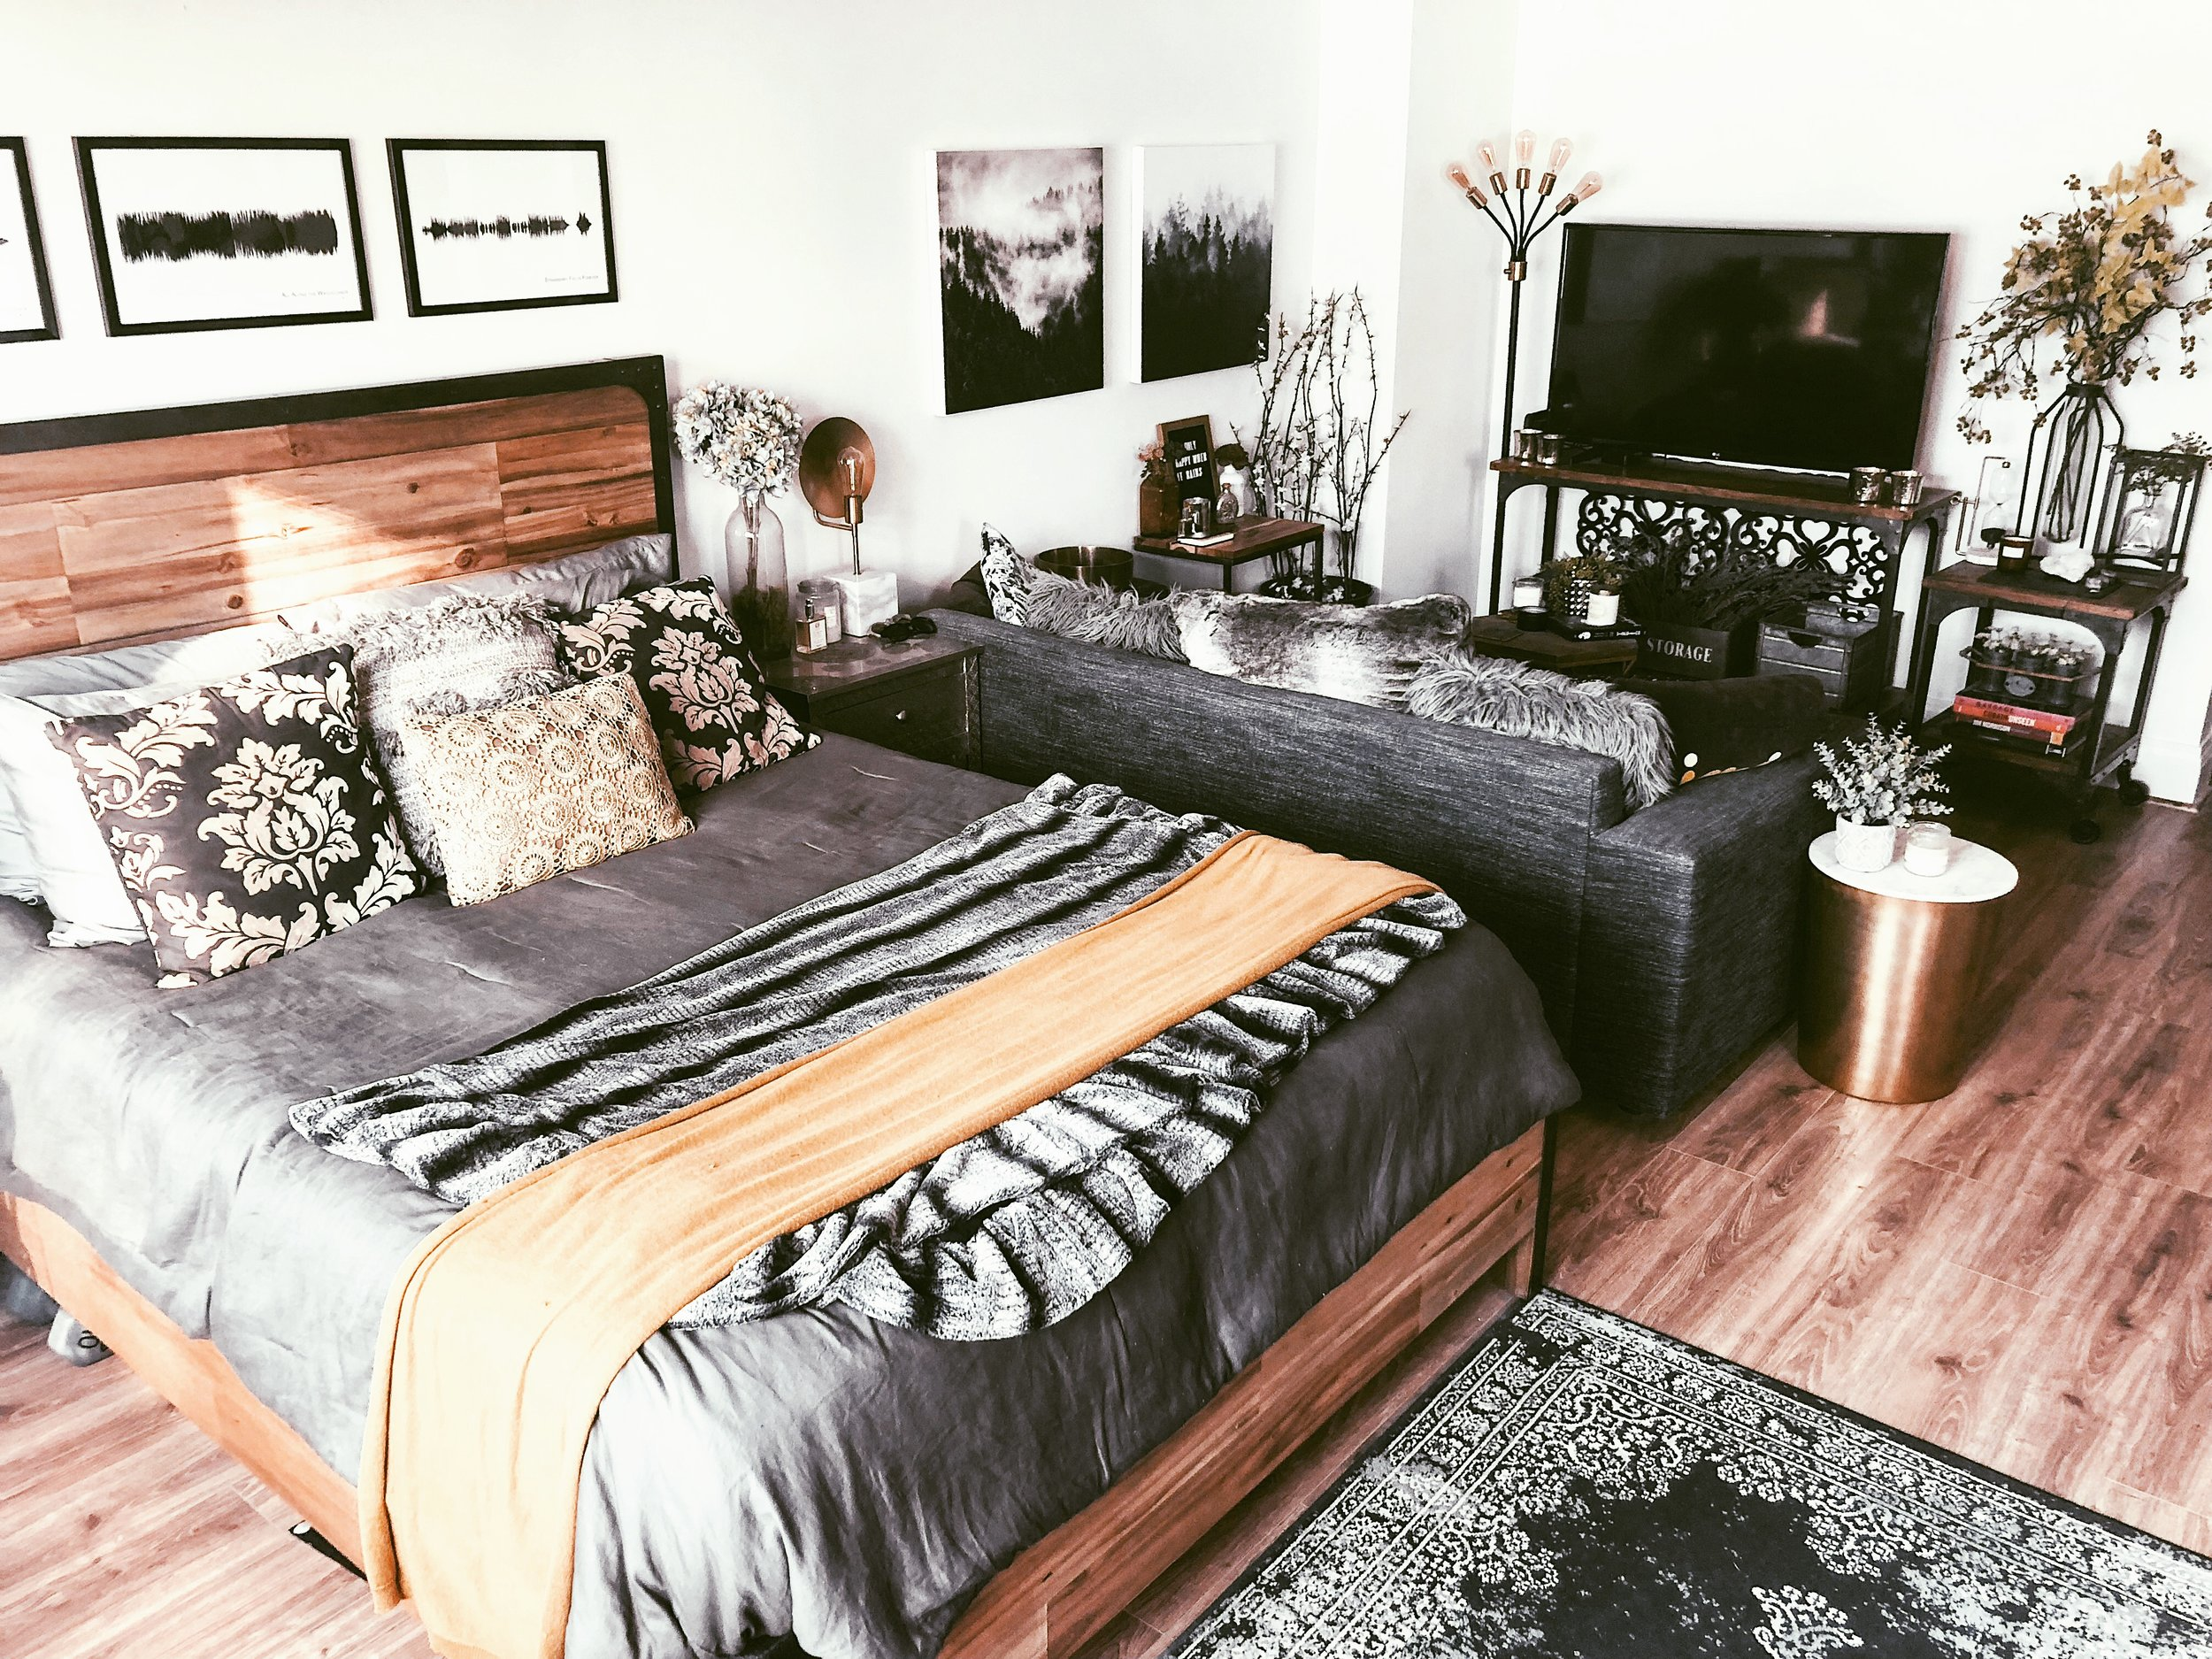 My rustic oasis of a studio apartment.